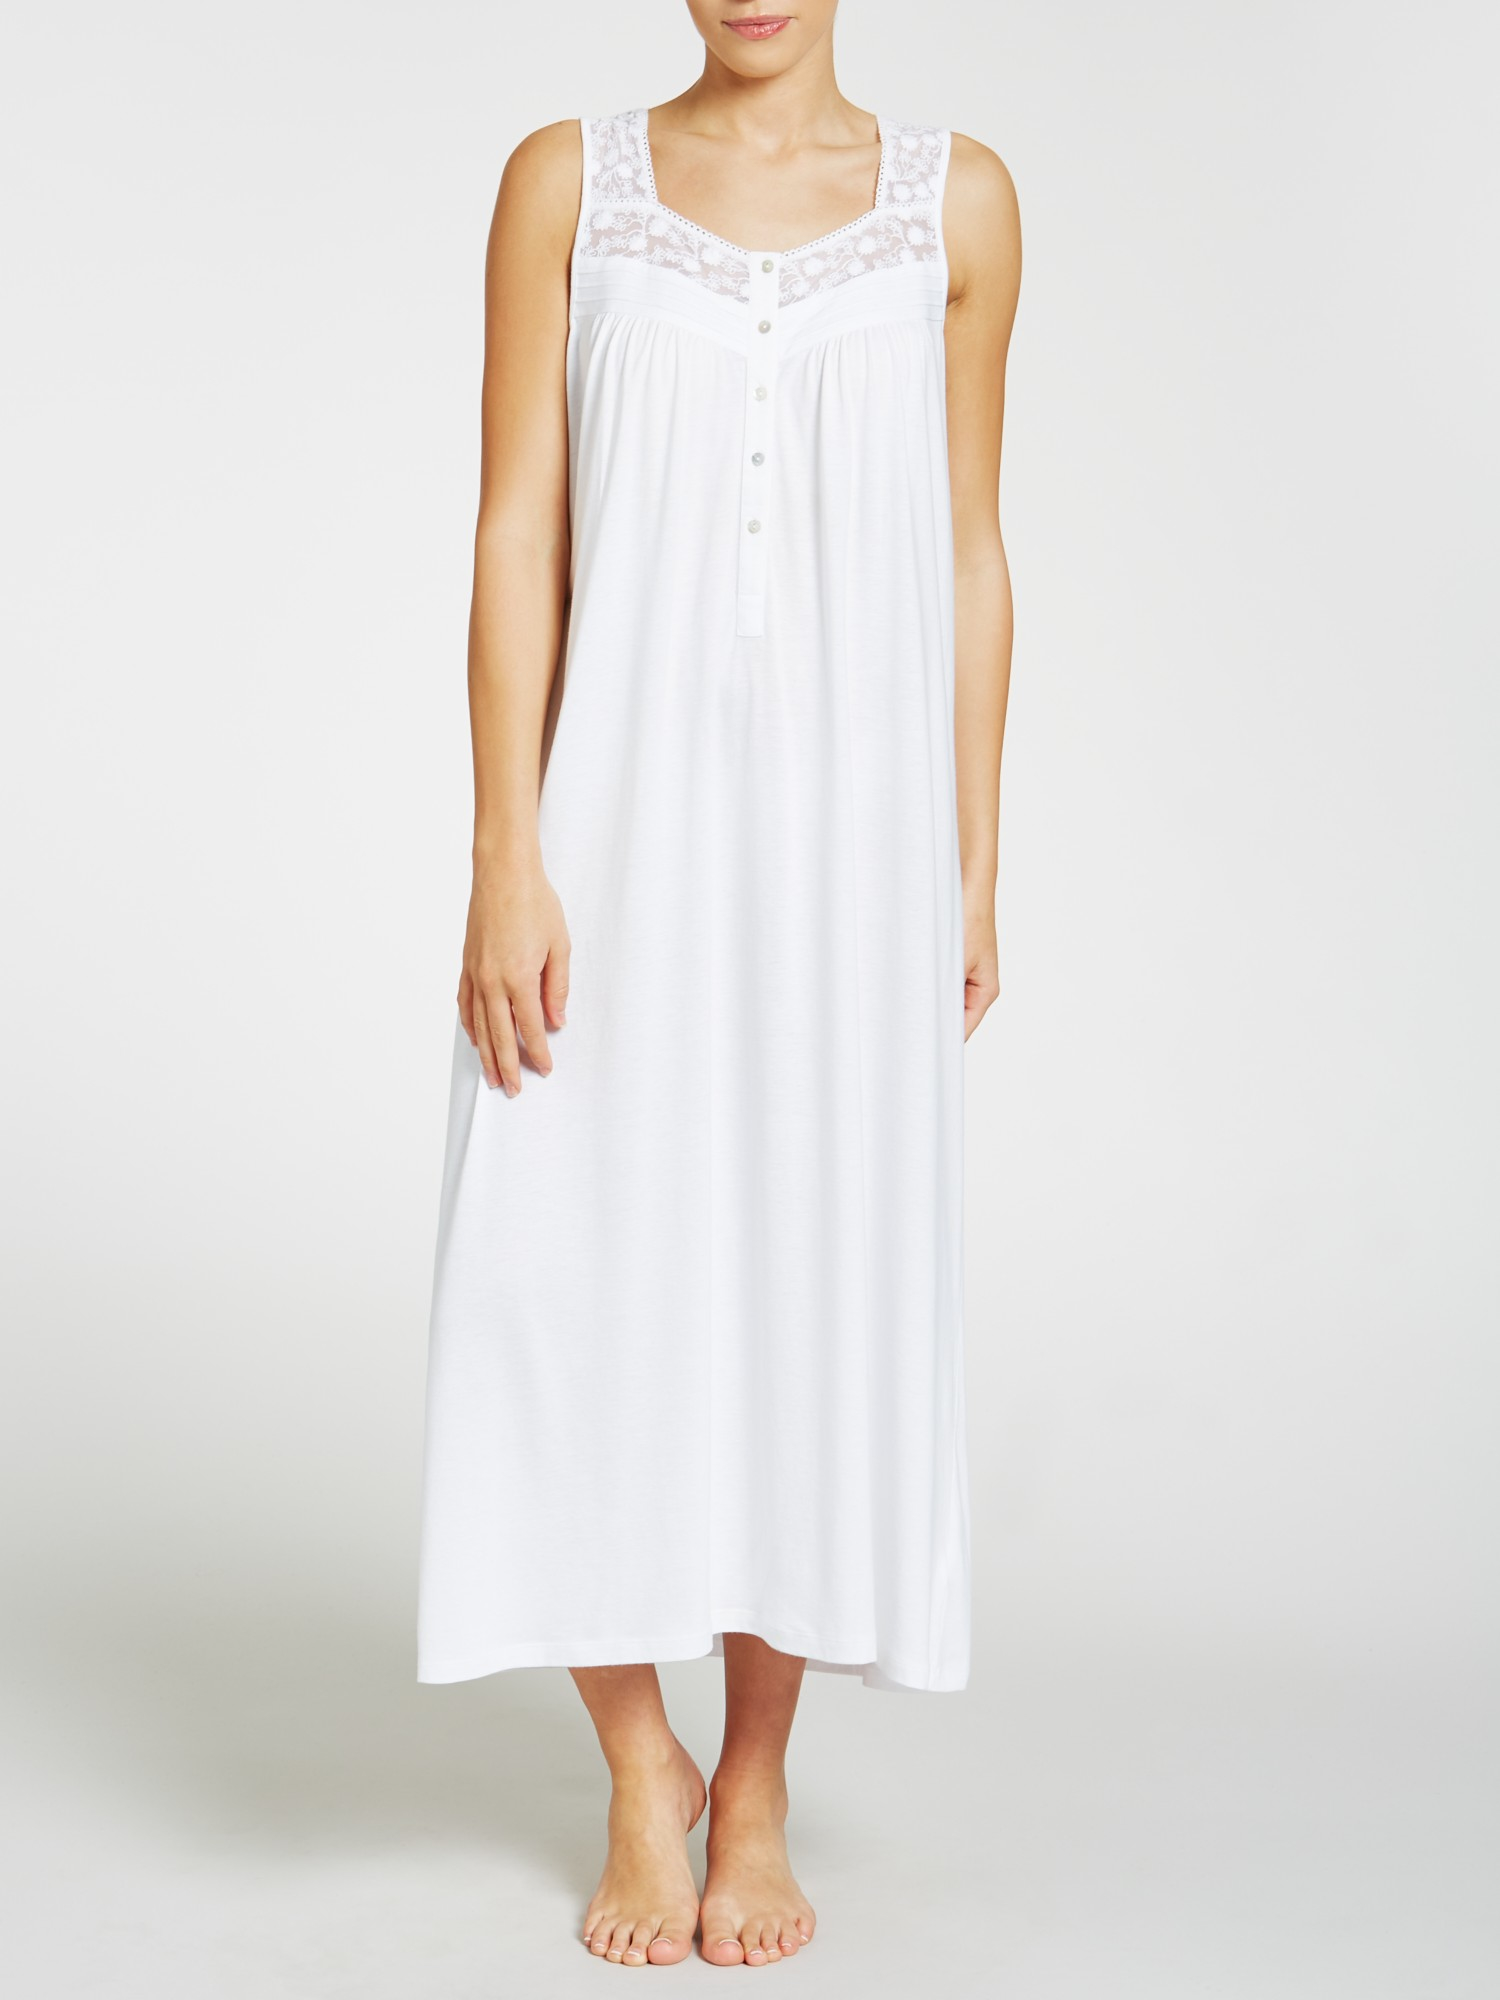 18be4e9978 John Lewis Classic Lace Trim Jersey Nightdress in White - Lyst